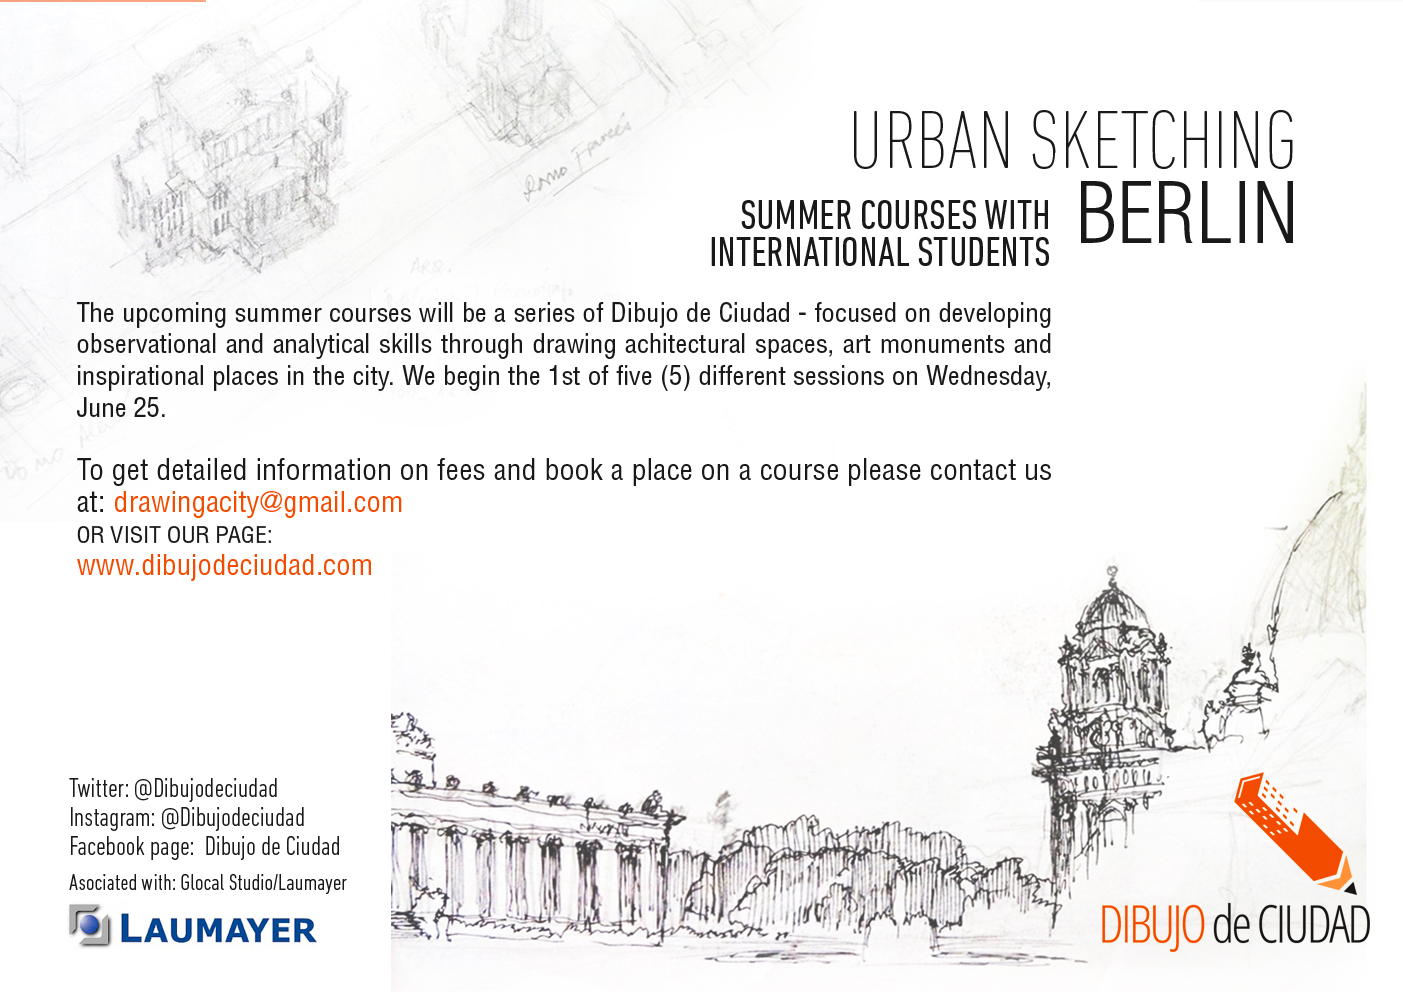 short courses of hand drawing observational analytical short courses of hand drawing observational analytical skills through drawing architectural spaces in berlin